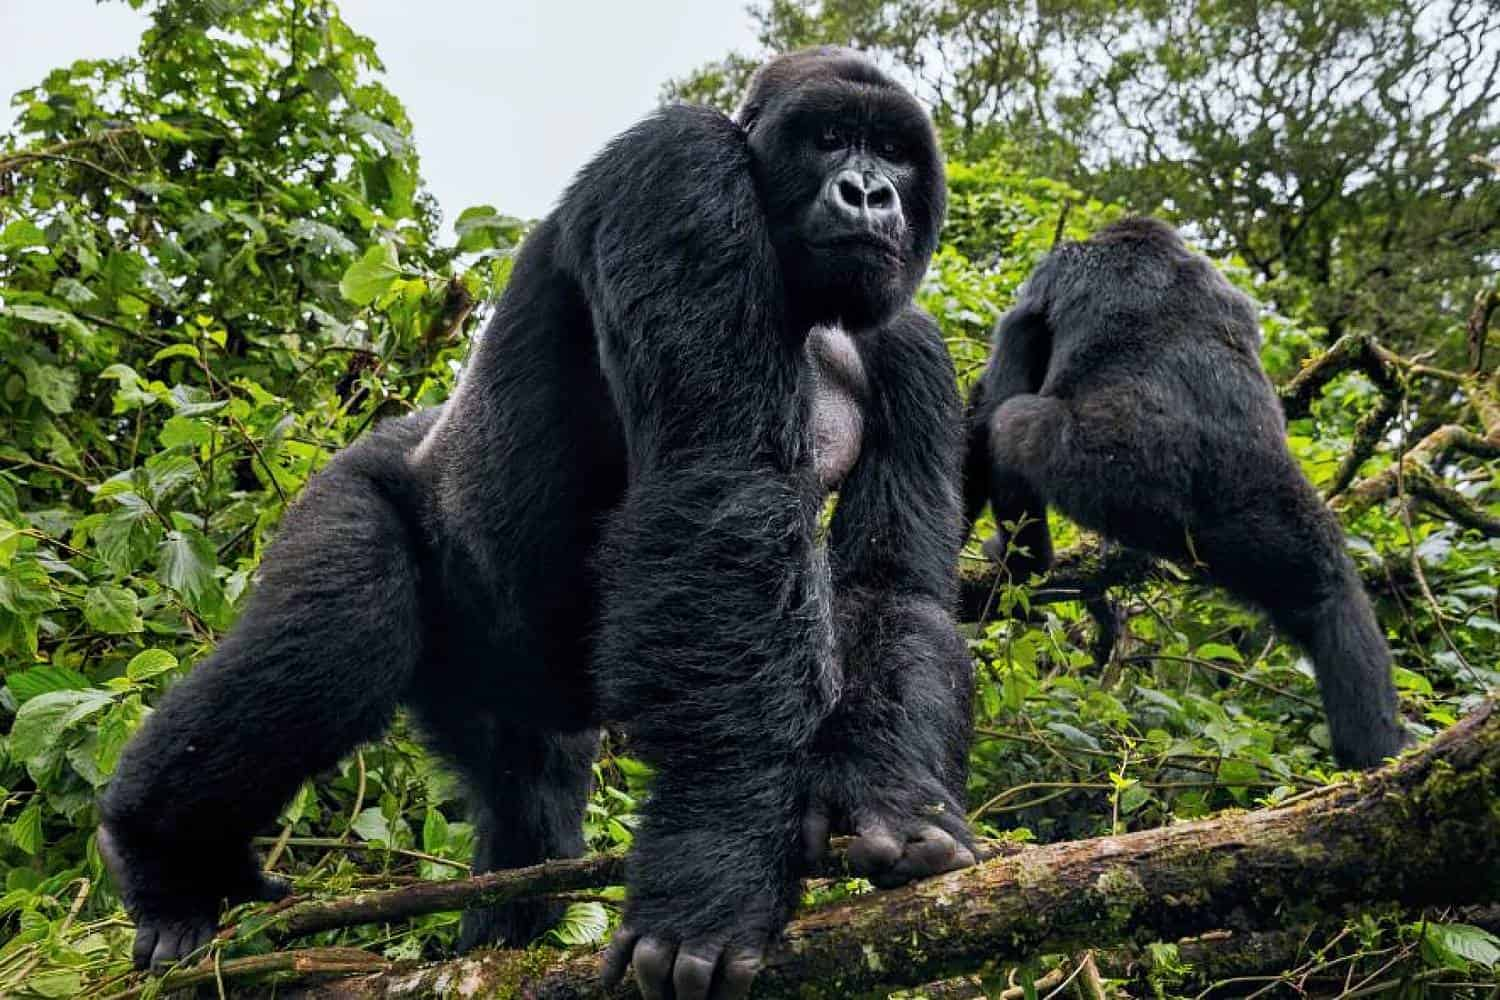 What To Expect On Your Gorilla Safari Day In Uganda